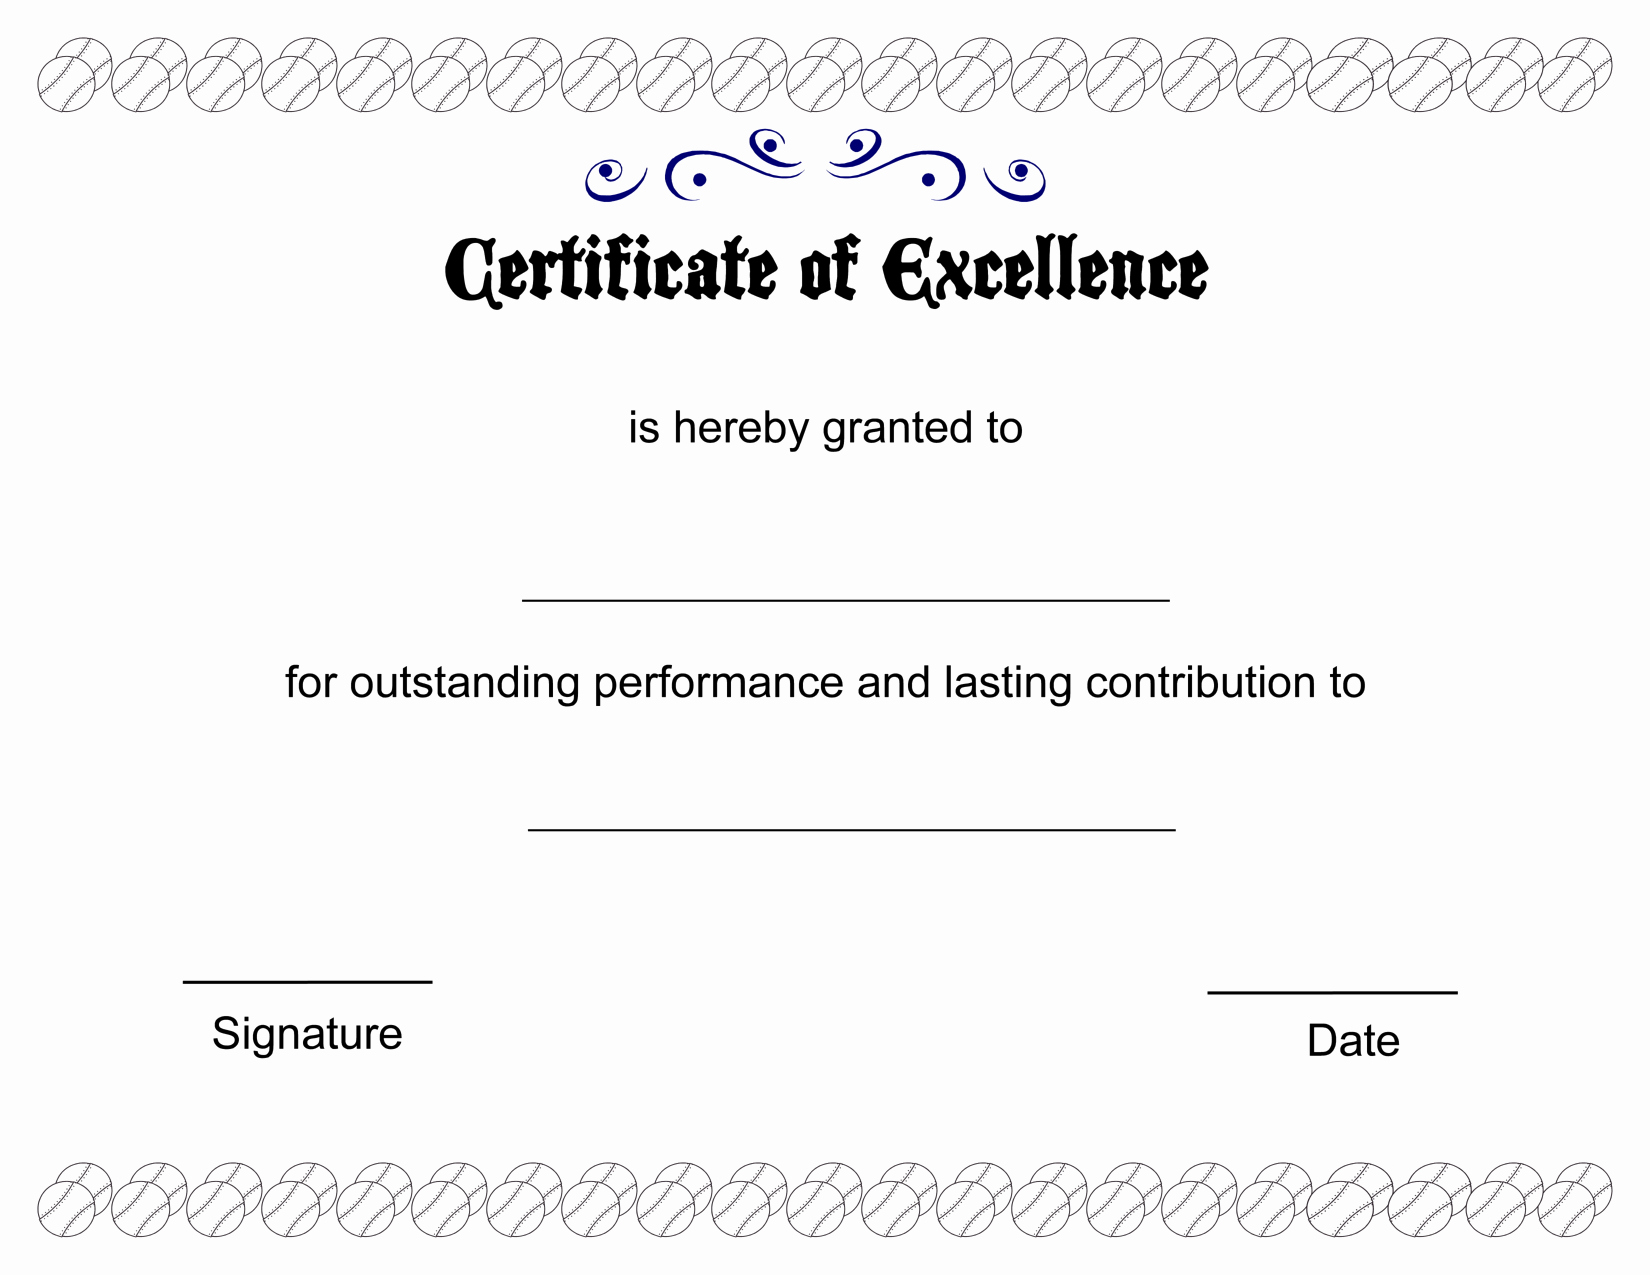 Printable Pdfs Certificate Of Excellence Template